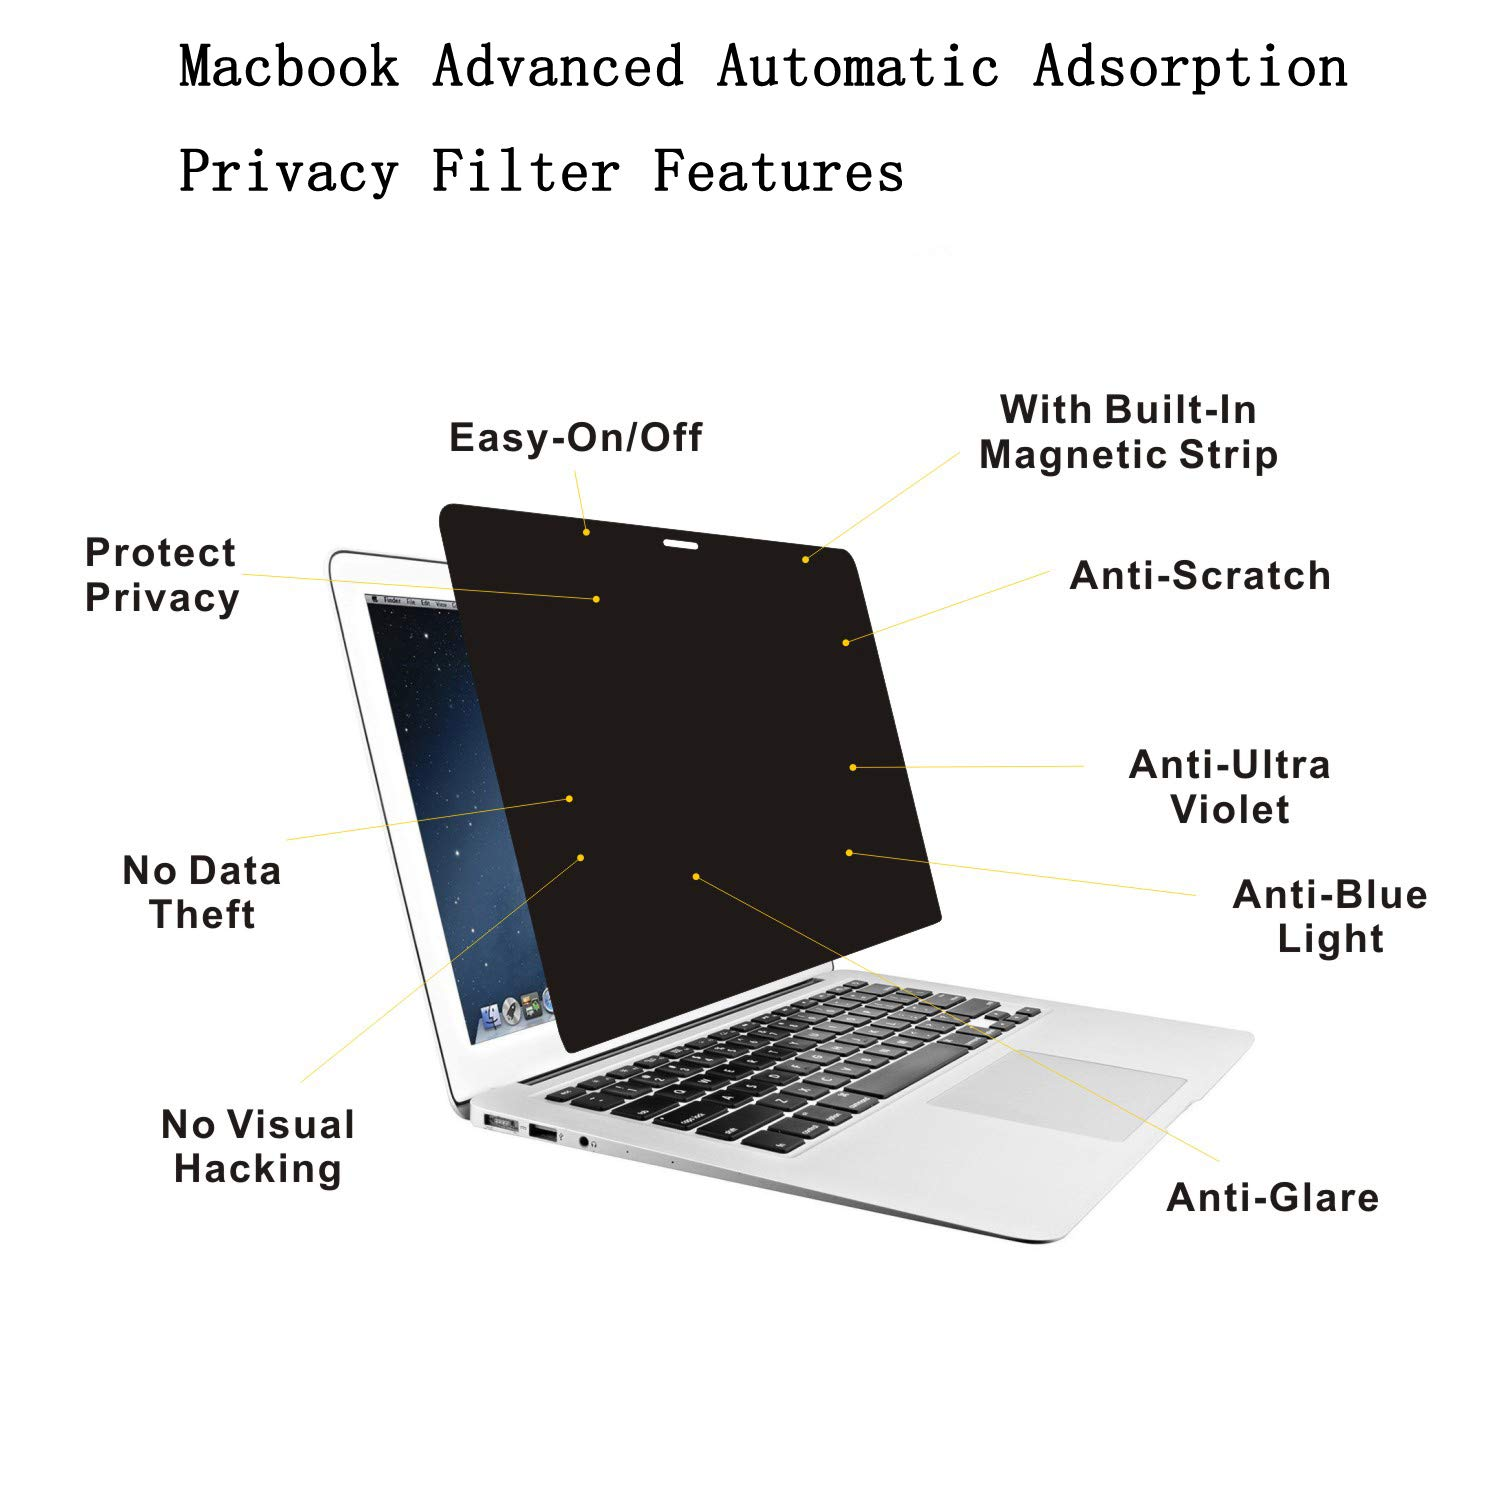 Accgonon Automatic Adsorption Laptop Privacy Screen Protectors Filter for MacBook Pro 13-inch (2012-mid 2015 Version,Model:A1502 and A1425) Anti-Glare Anti-Spy Scratch and UV Protection Easy On/Off by ACCGONON (Image #4)